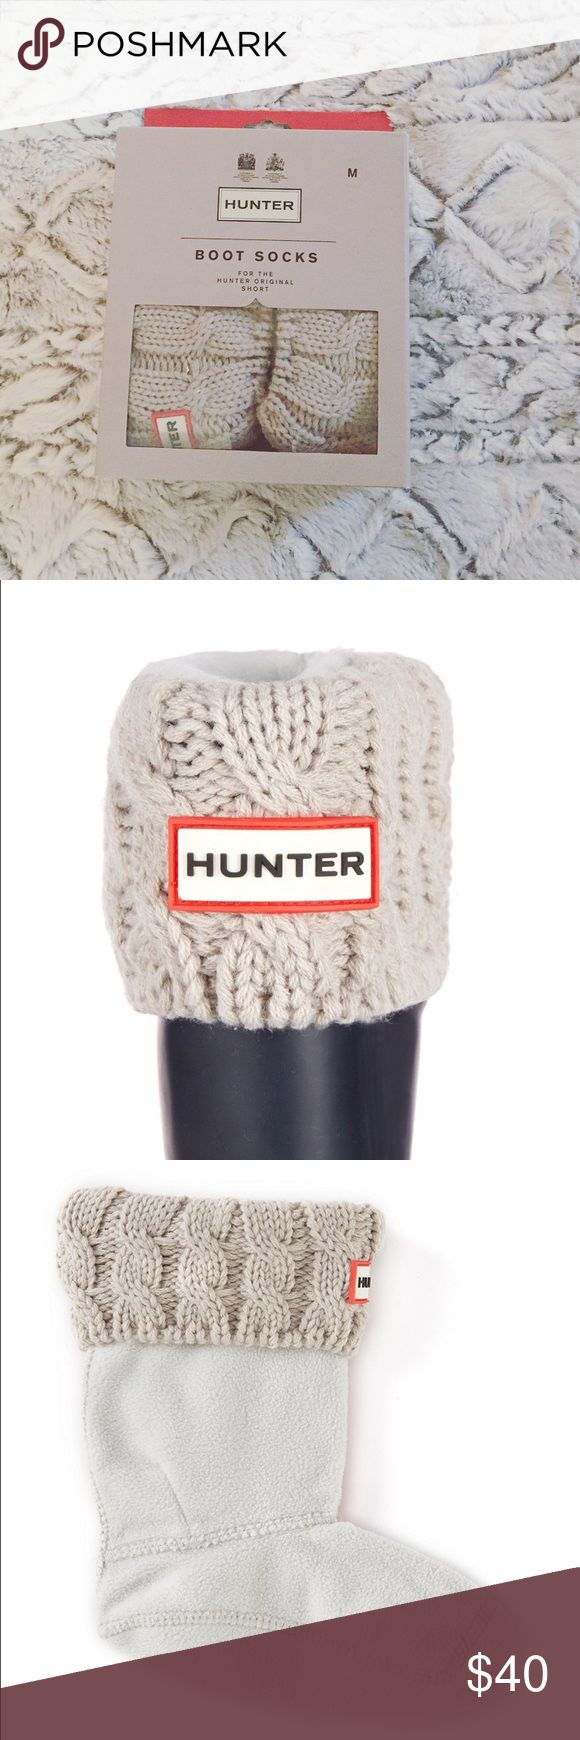 Hunter Boot Socks New without tags. Cable knit boot socks for Hunter Original Short. Size medium (5-7). Color is Greige. Never had the chance to wear these so my loss is your gain! No trades, price is firm. Hunter Boots Shoes Winter & Rain Boots